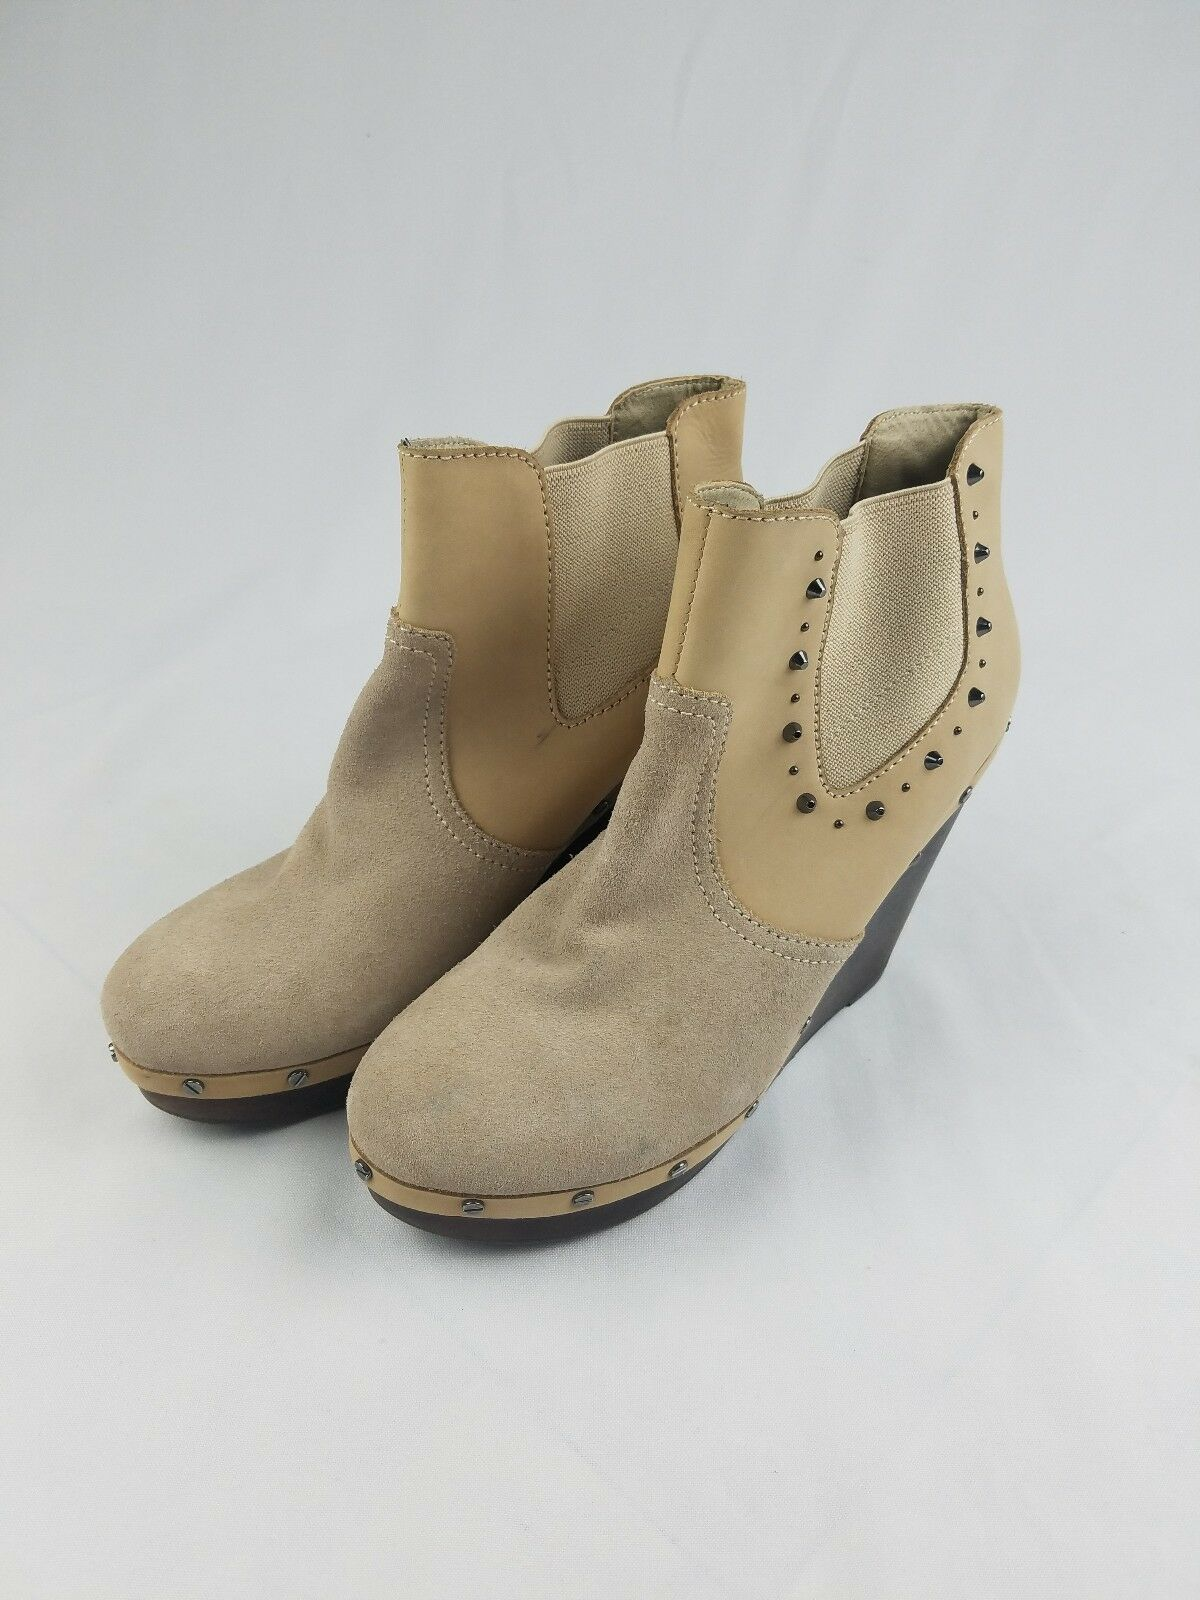 Dr. Scholl's Abbey Original Collection women 9 tan leather suede wedge booties